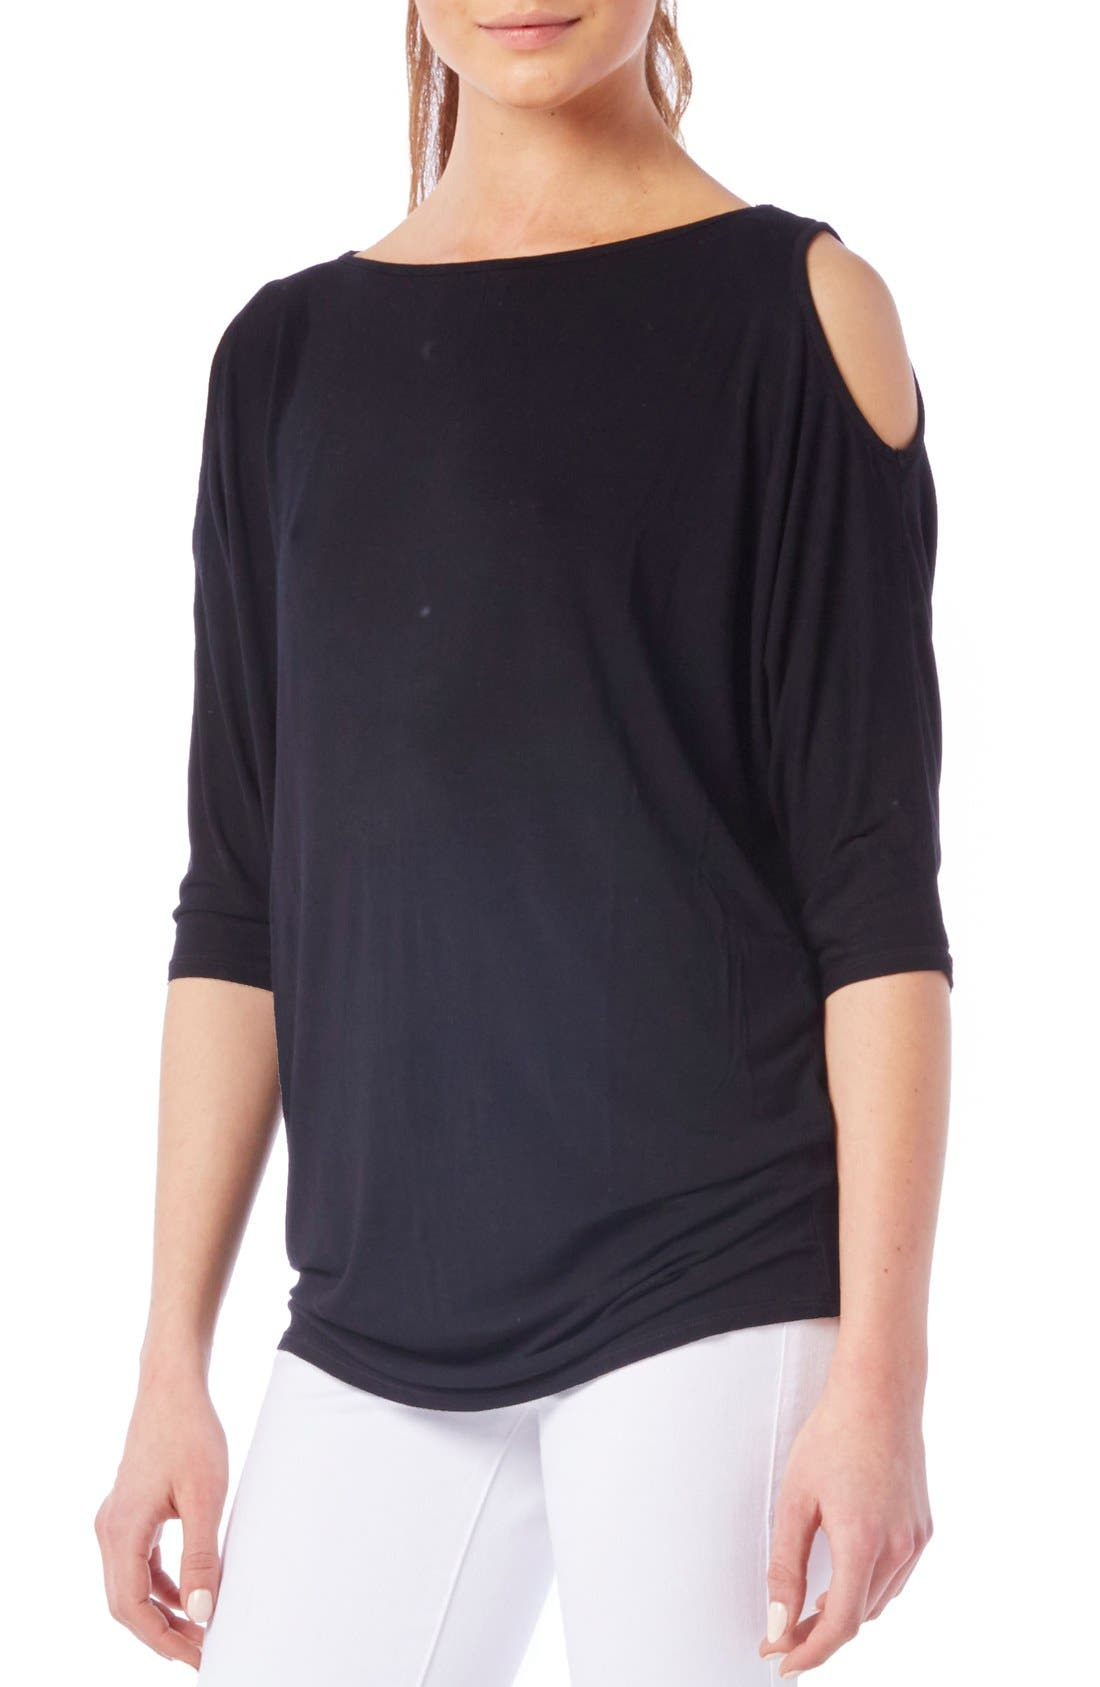 MICHAEL STARS, Cold Shoulder Tee, Alternate thumbnail 2, color, BLACK